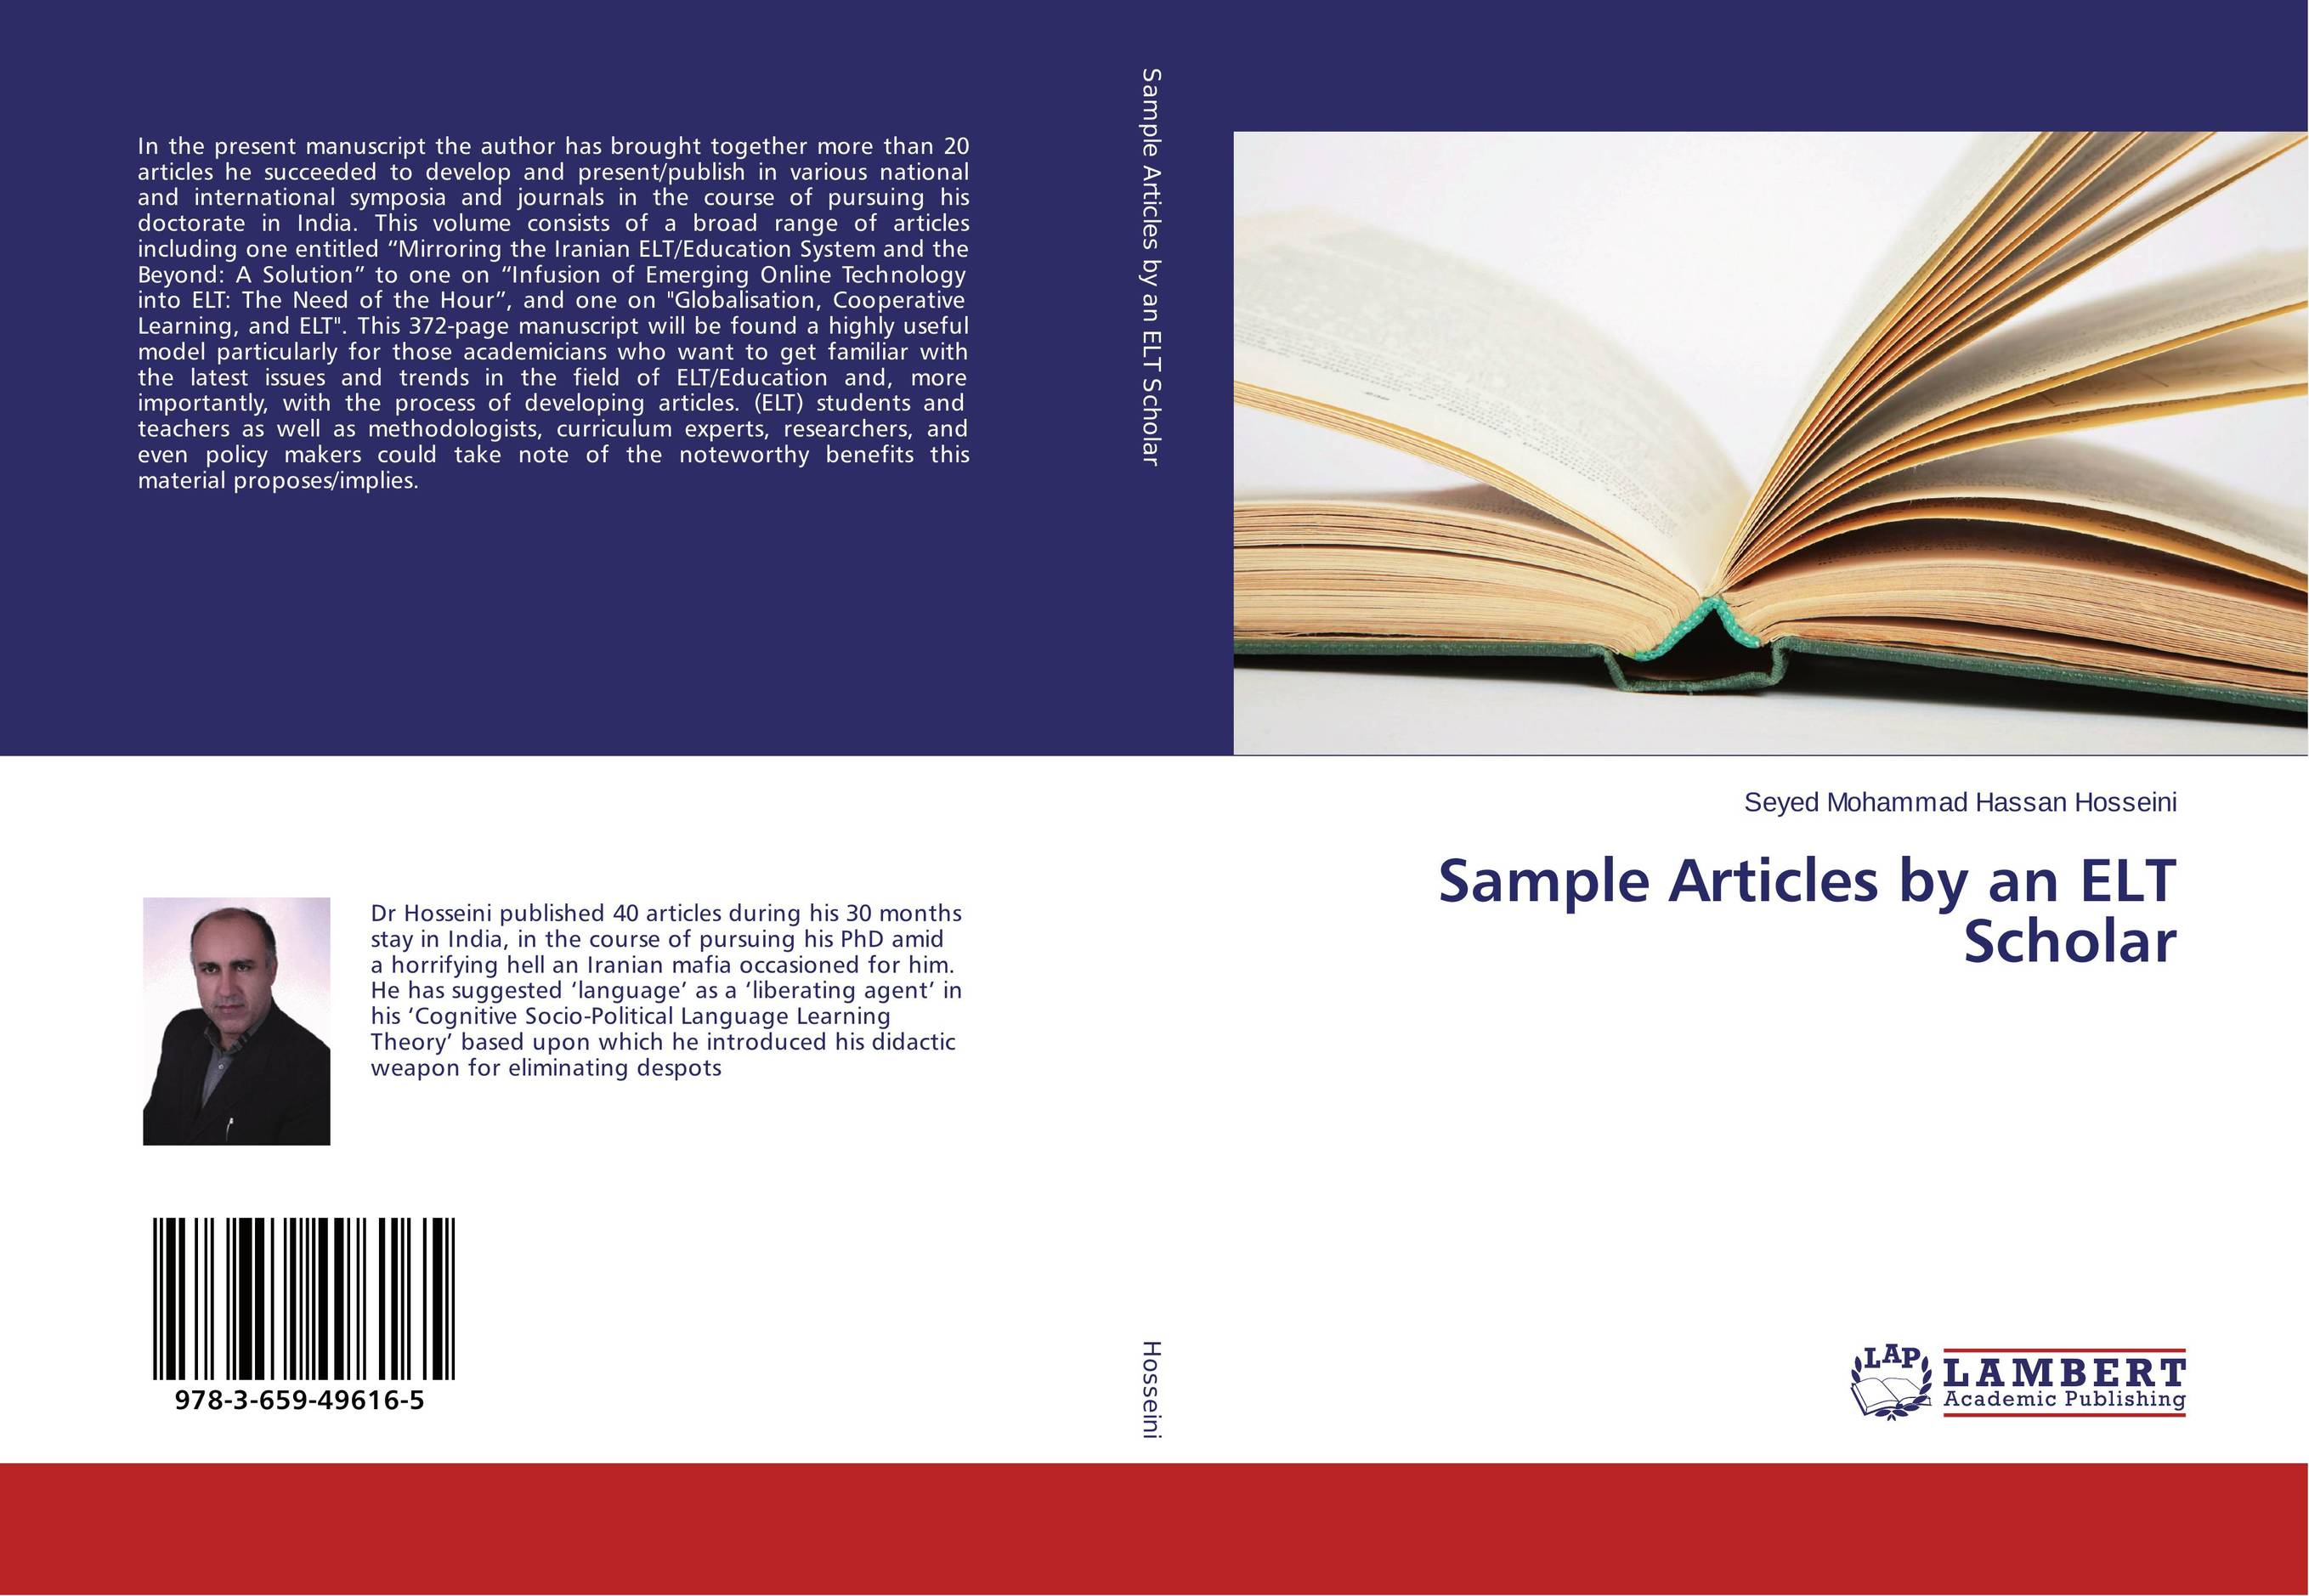 Sample Articles by an ELT Scholar manuscript found in accra